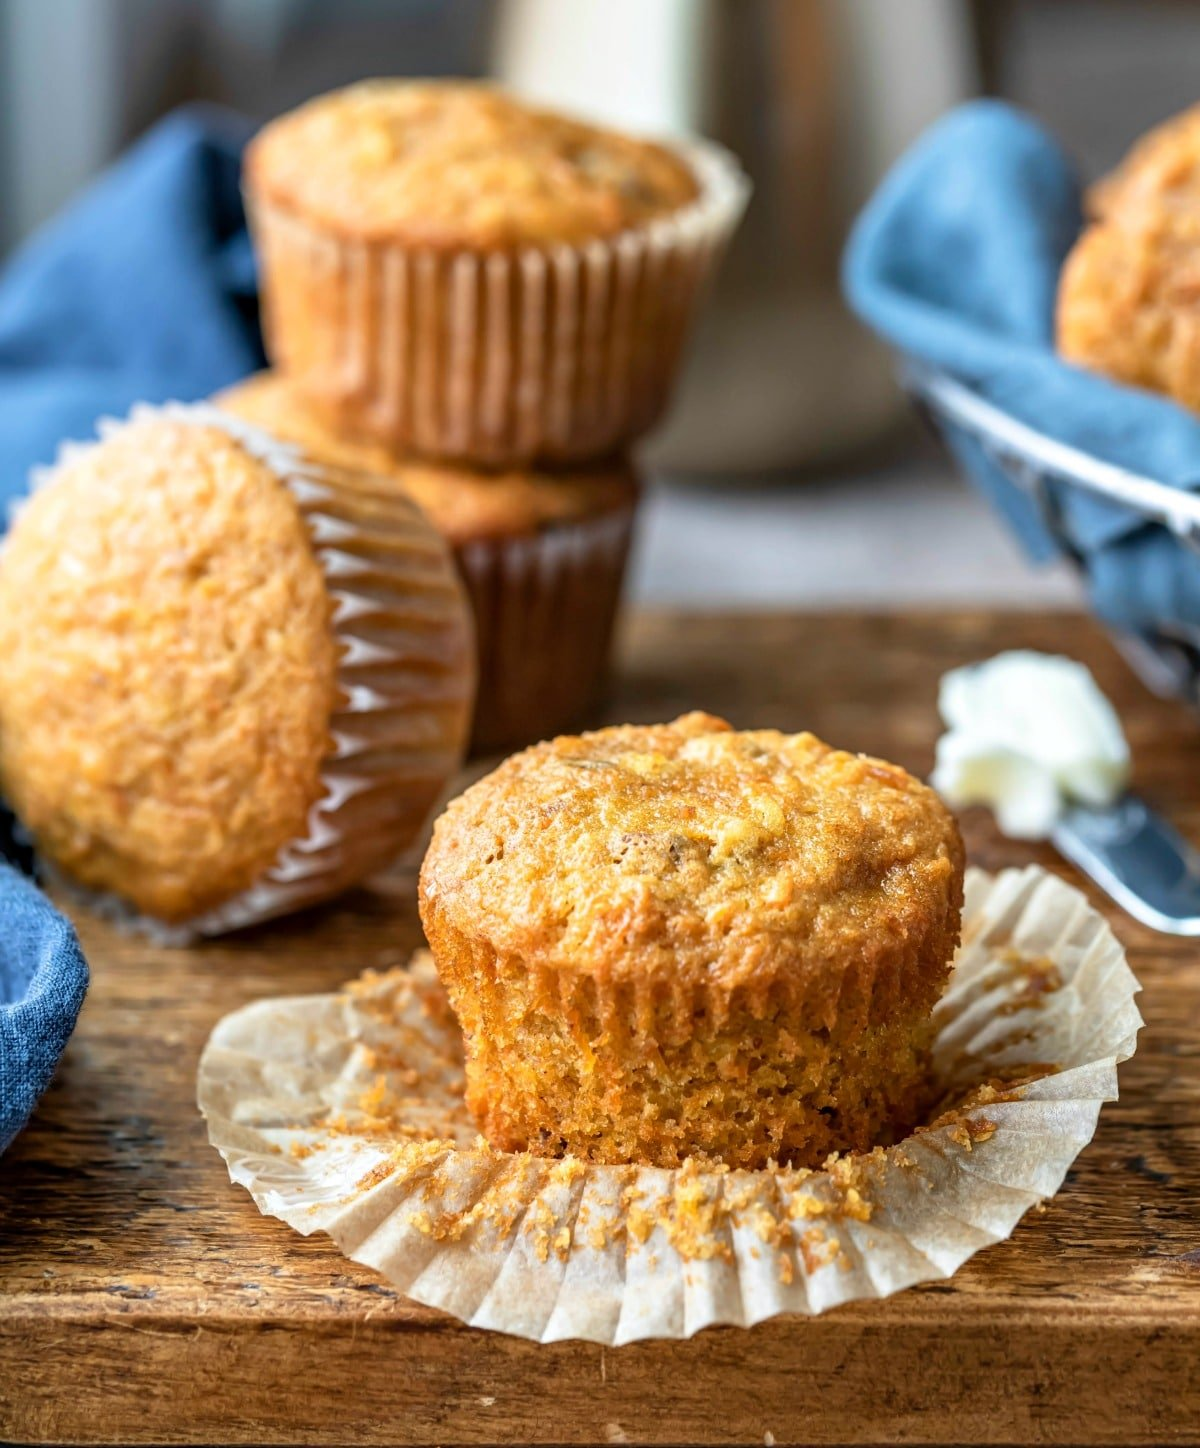 Carrot cake muffin next to three carrot cake muffins